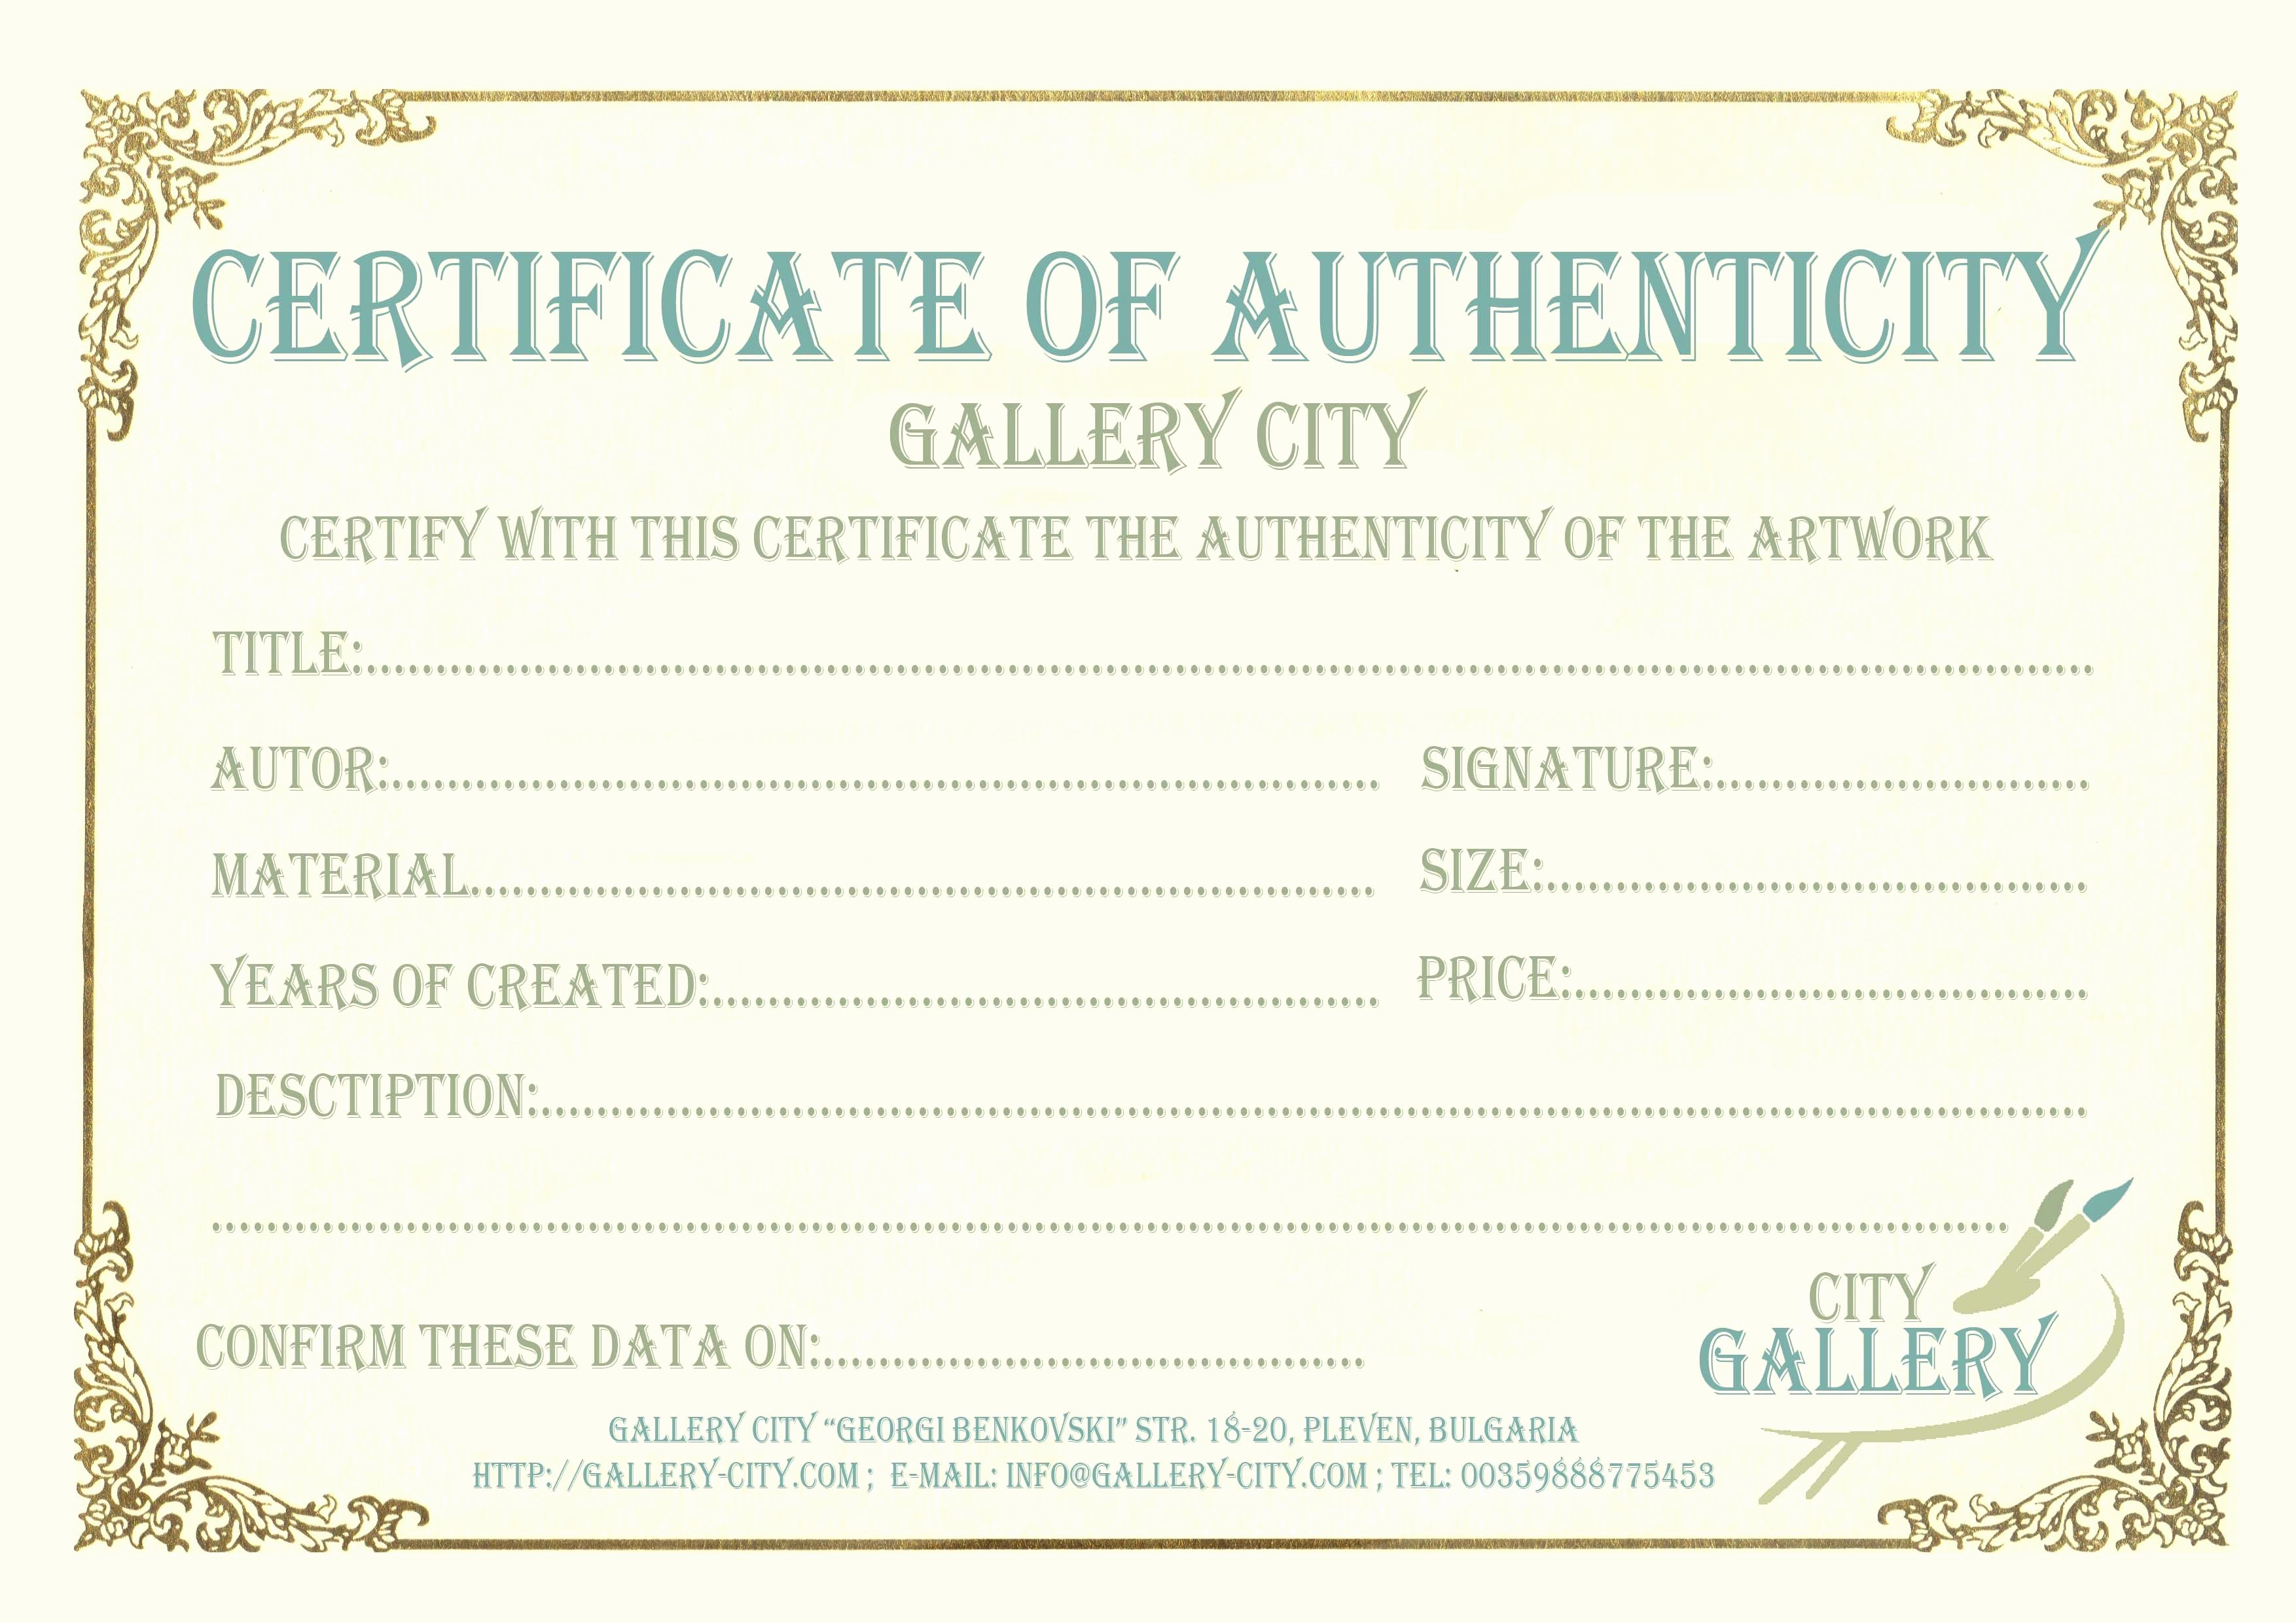 Certificate Of Authenticity Artwork Template Inspirational Certificate Authenticity Template Art Authenticity